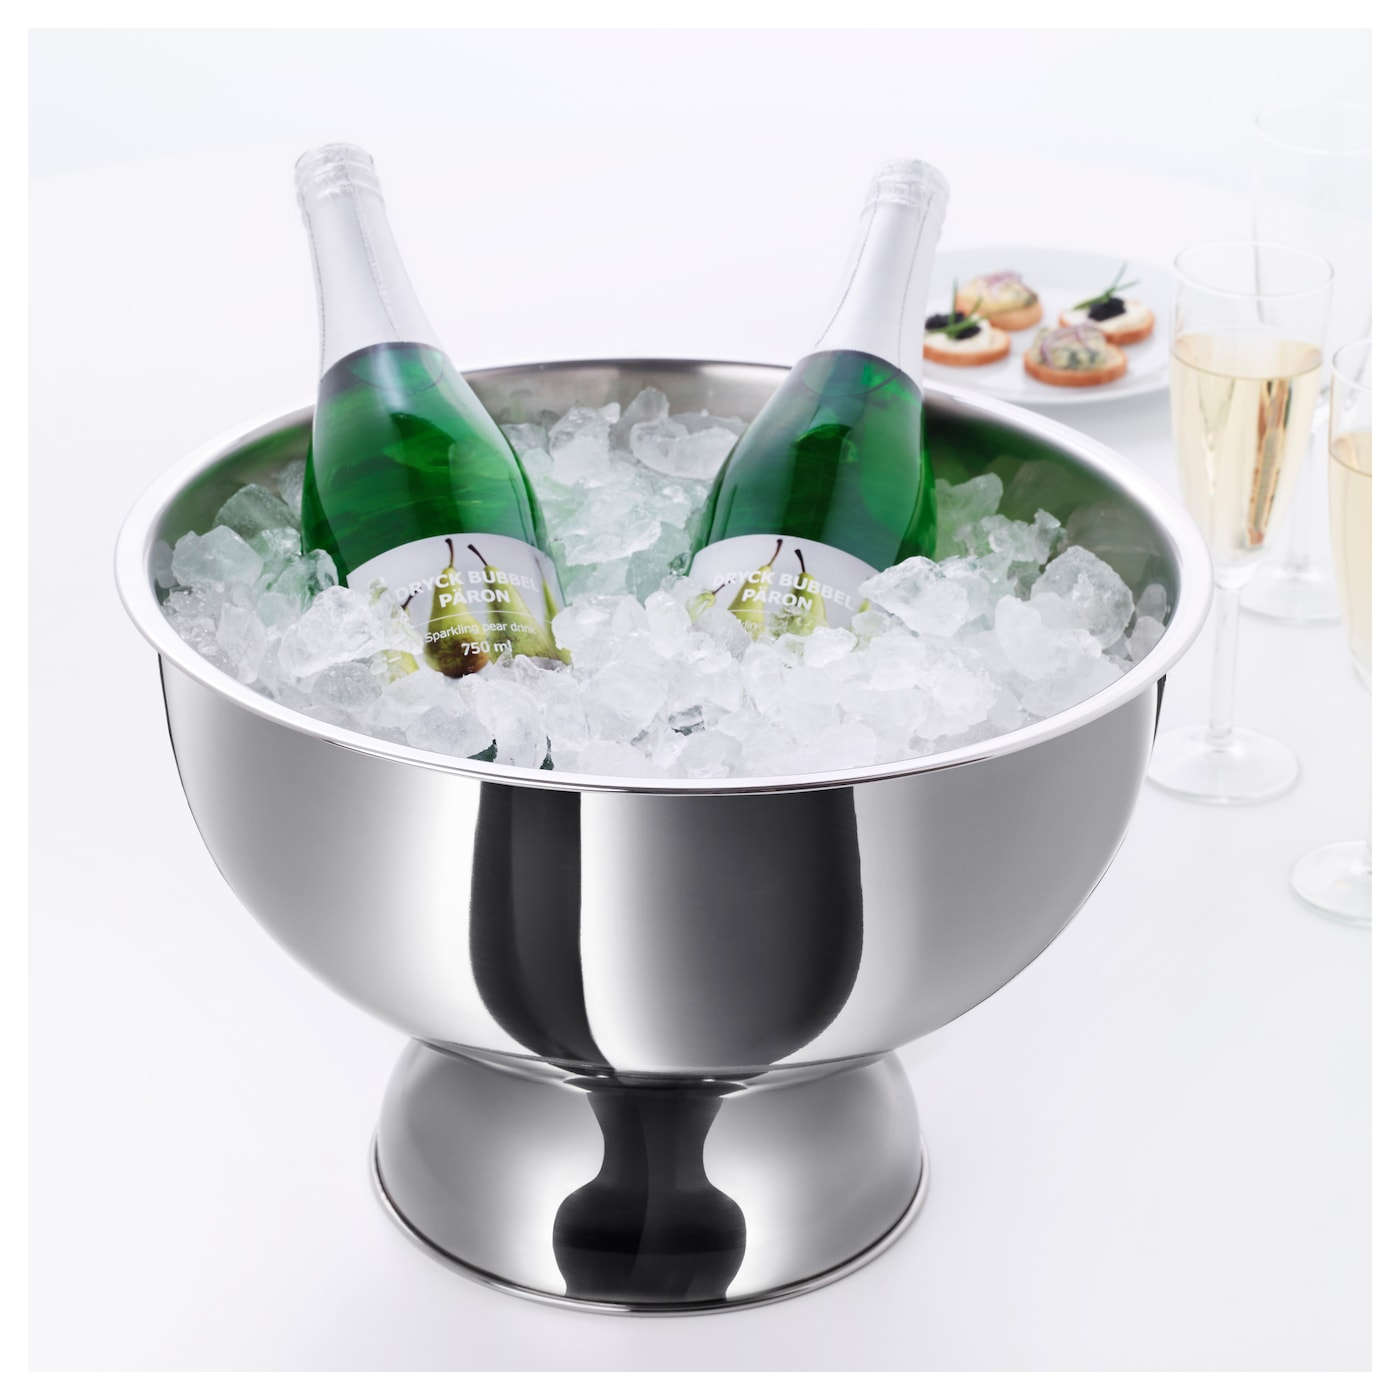 IKEA ROLIGT wine/champagne cooler Fill with ice to keep your beverages cool longer.